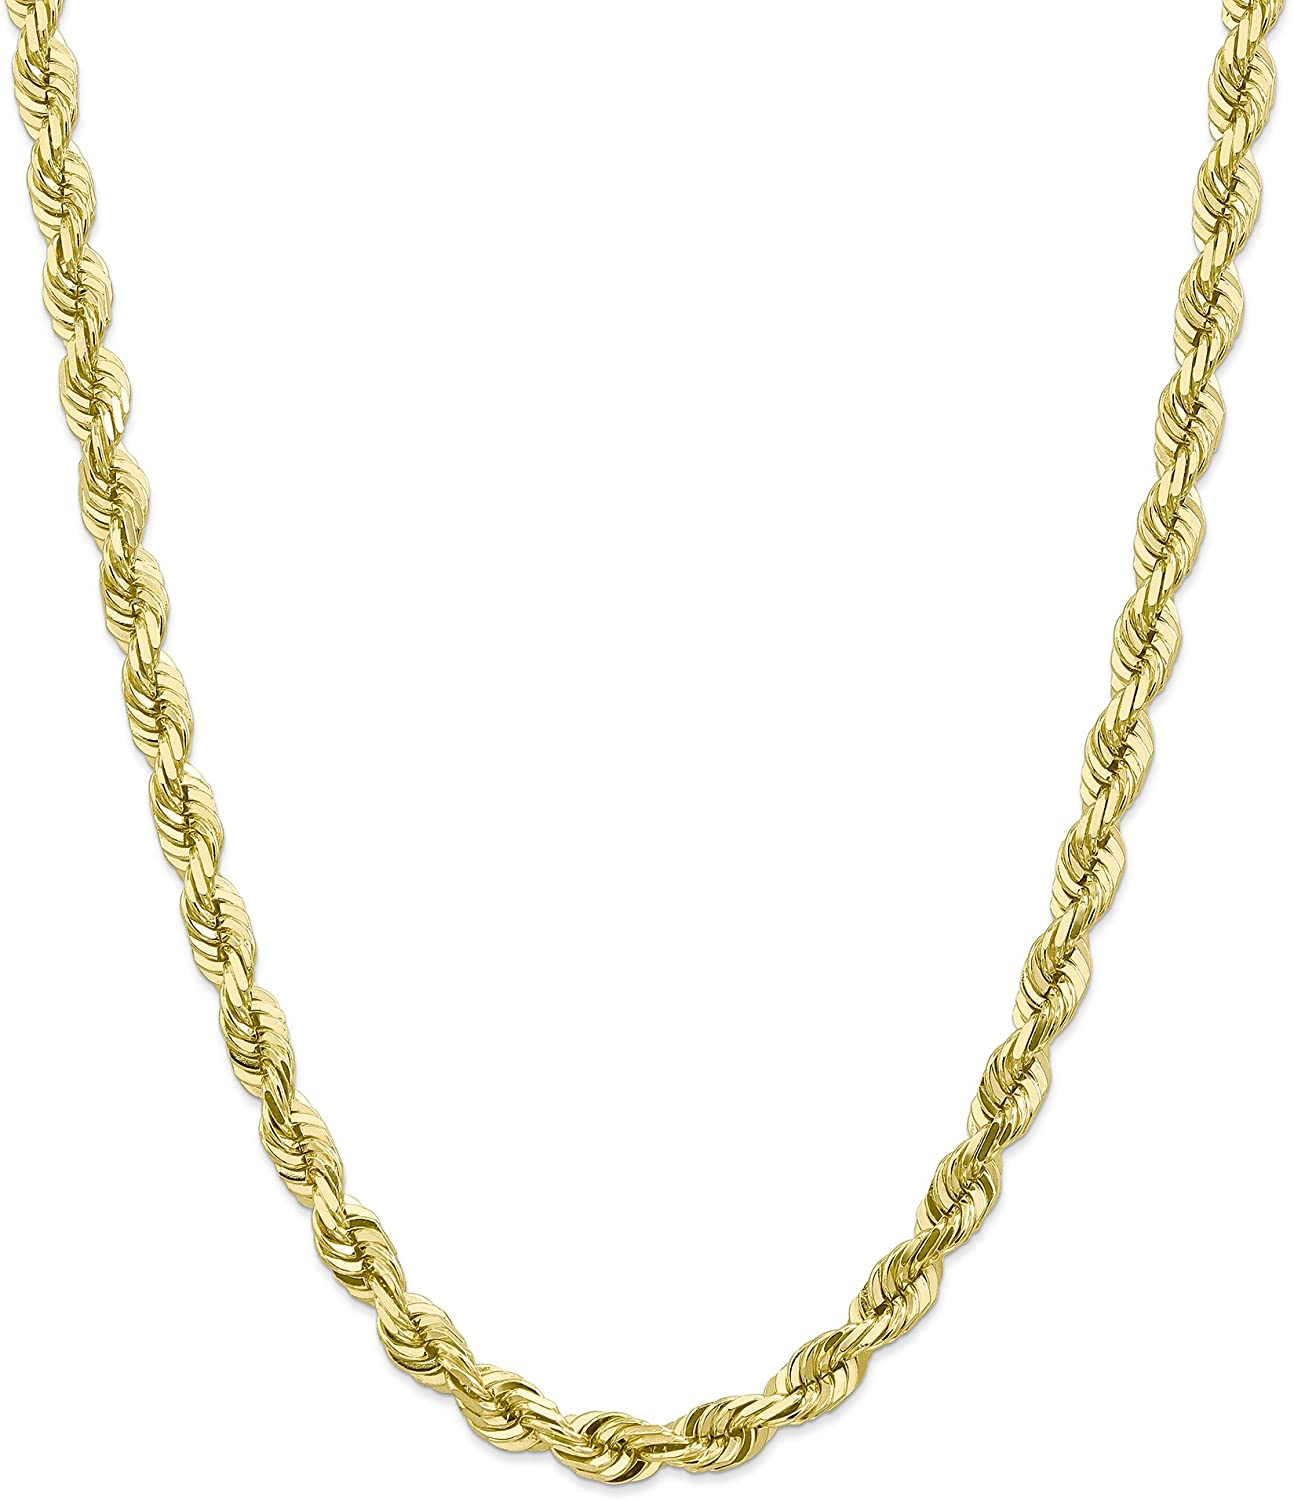 10k Yellow Gold 7mm Diamond-Cut Rope Chain Necklace with Secure Lobster Clasp 22inch for Men Women